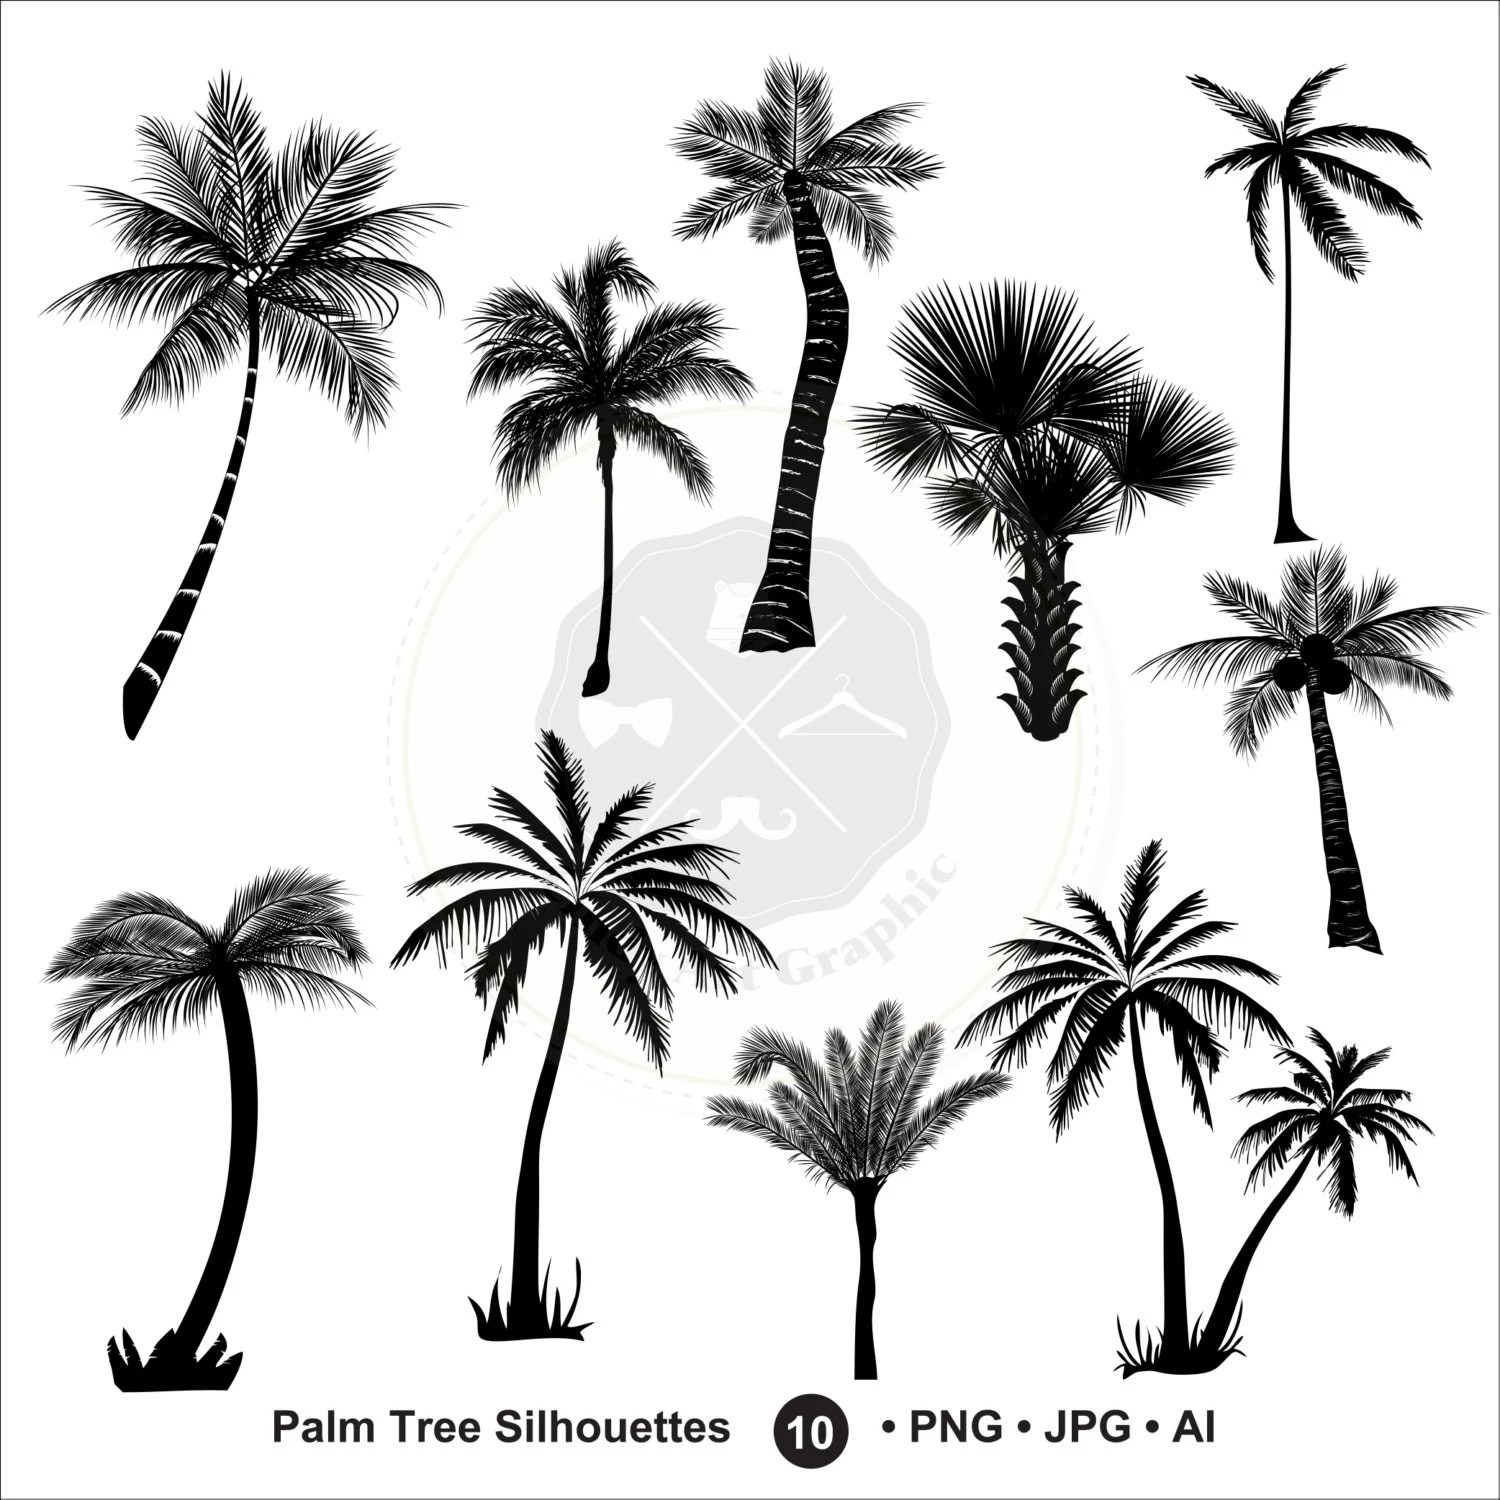 Palm Tree Silhouettes Clipartlm Tree Cliparttree